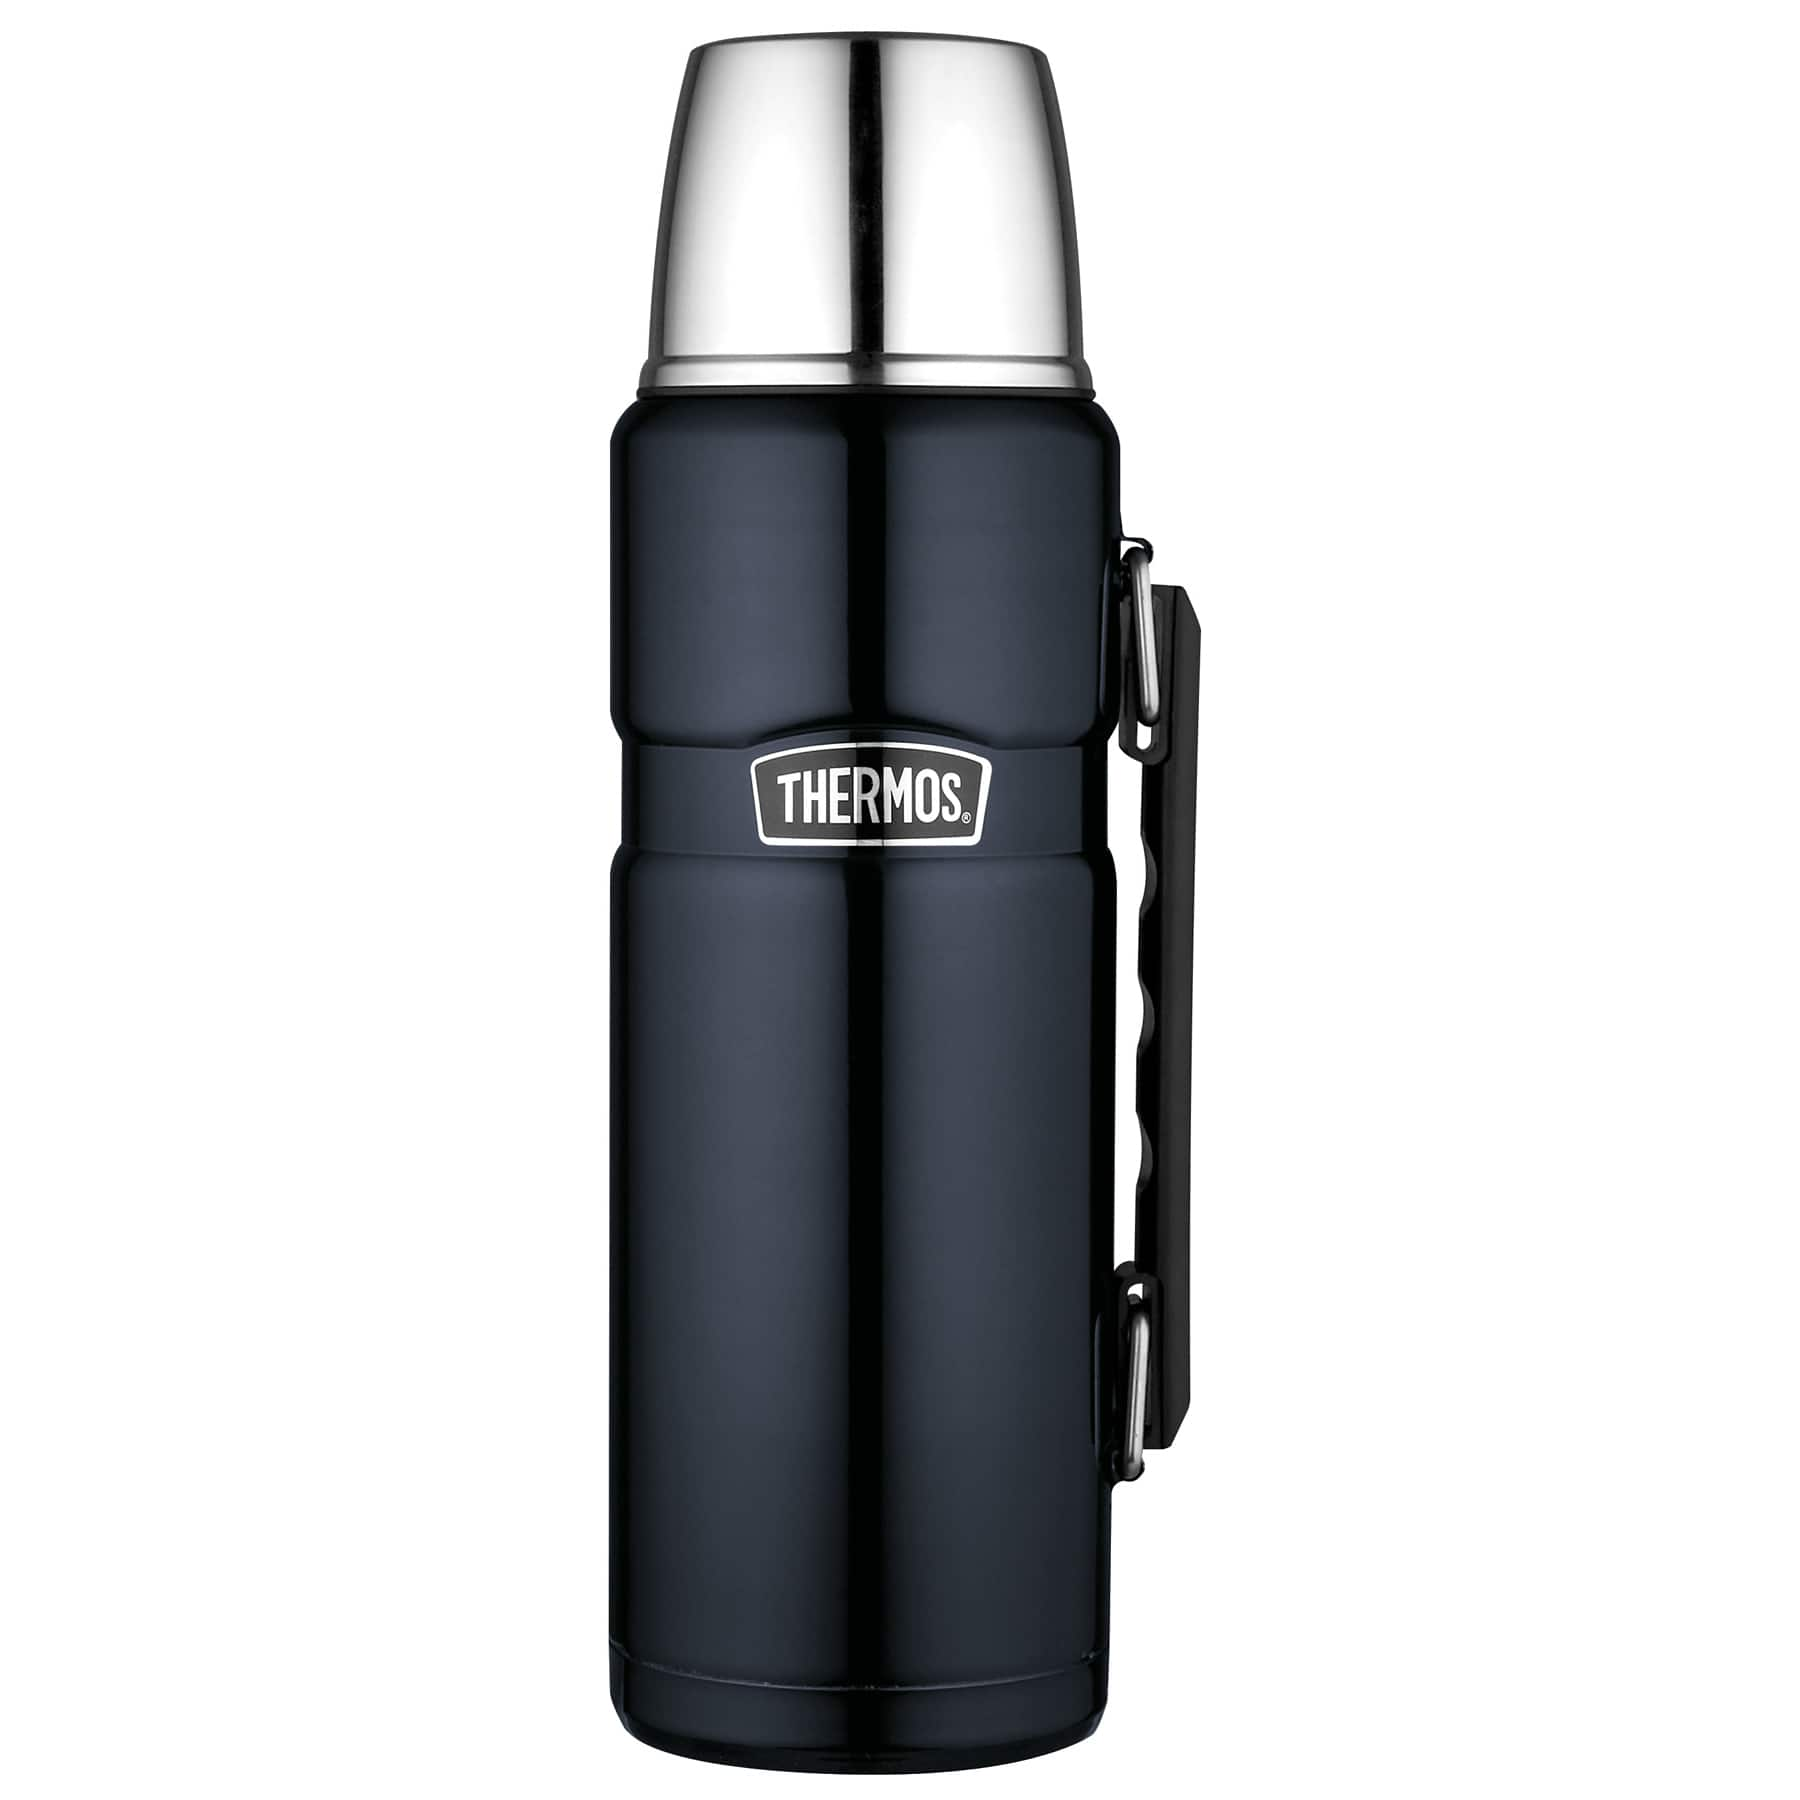 Thermos Stainless King 40 Ounce Beverage Bottle, Midnight Blue  $19.84